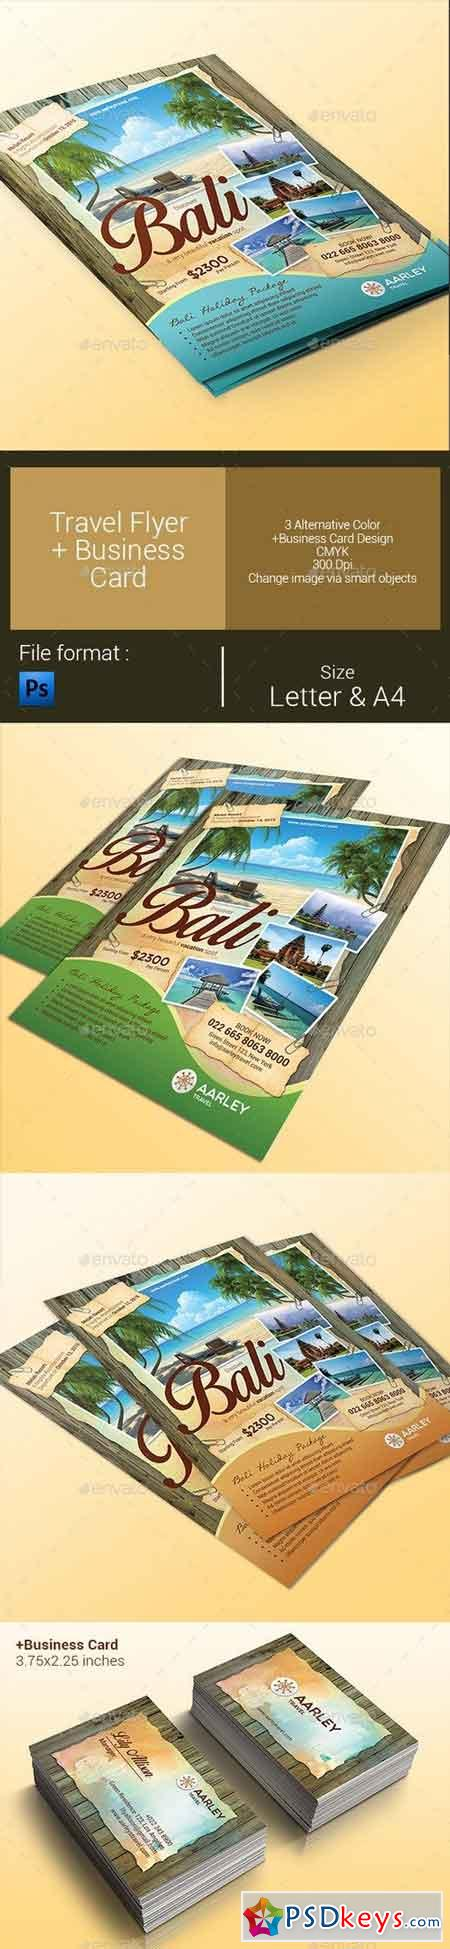 Travel Flyer + Business Card 9929864